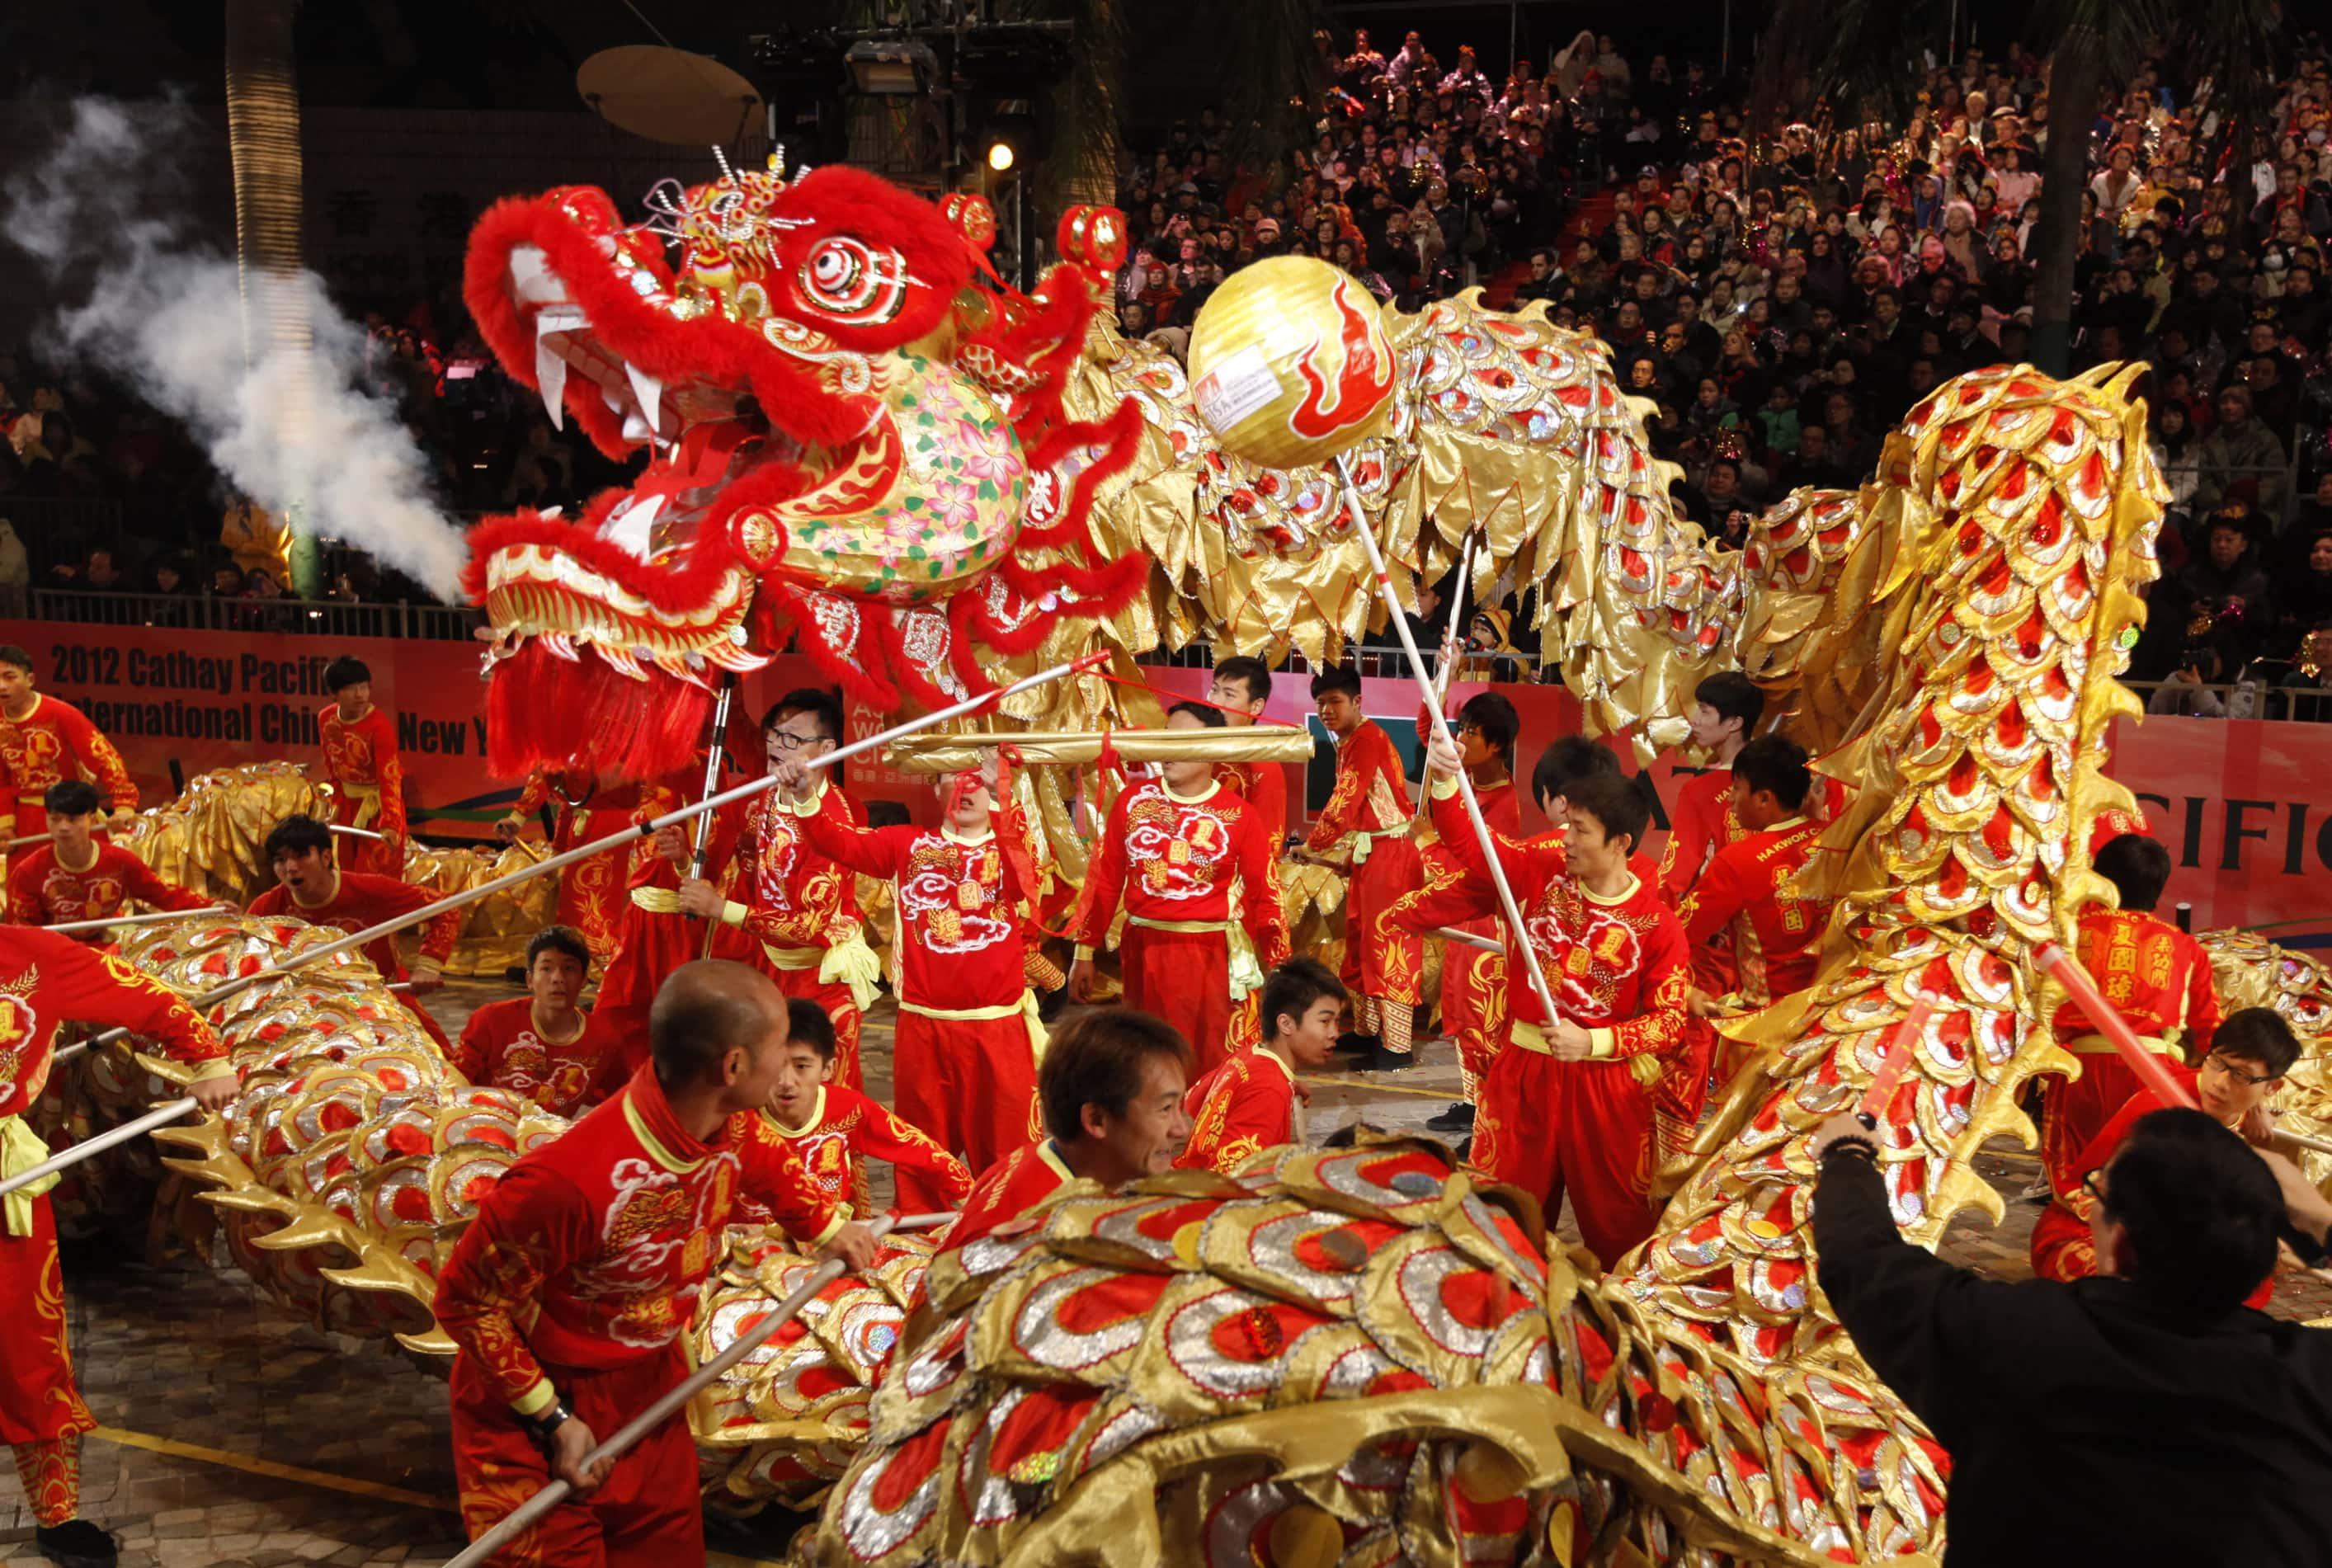 Performers take part in a dragon dance in a night parade in Hong Kong Monday, Jan. 23, 2012, celebrating the start of the Chinese Lunar New Year. According to the Chinese zodiac, the year 2012 is called the Year of the Dragon. (AP Photo/Vincent Yu)